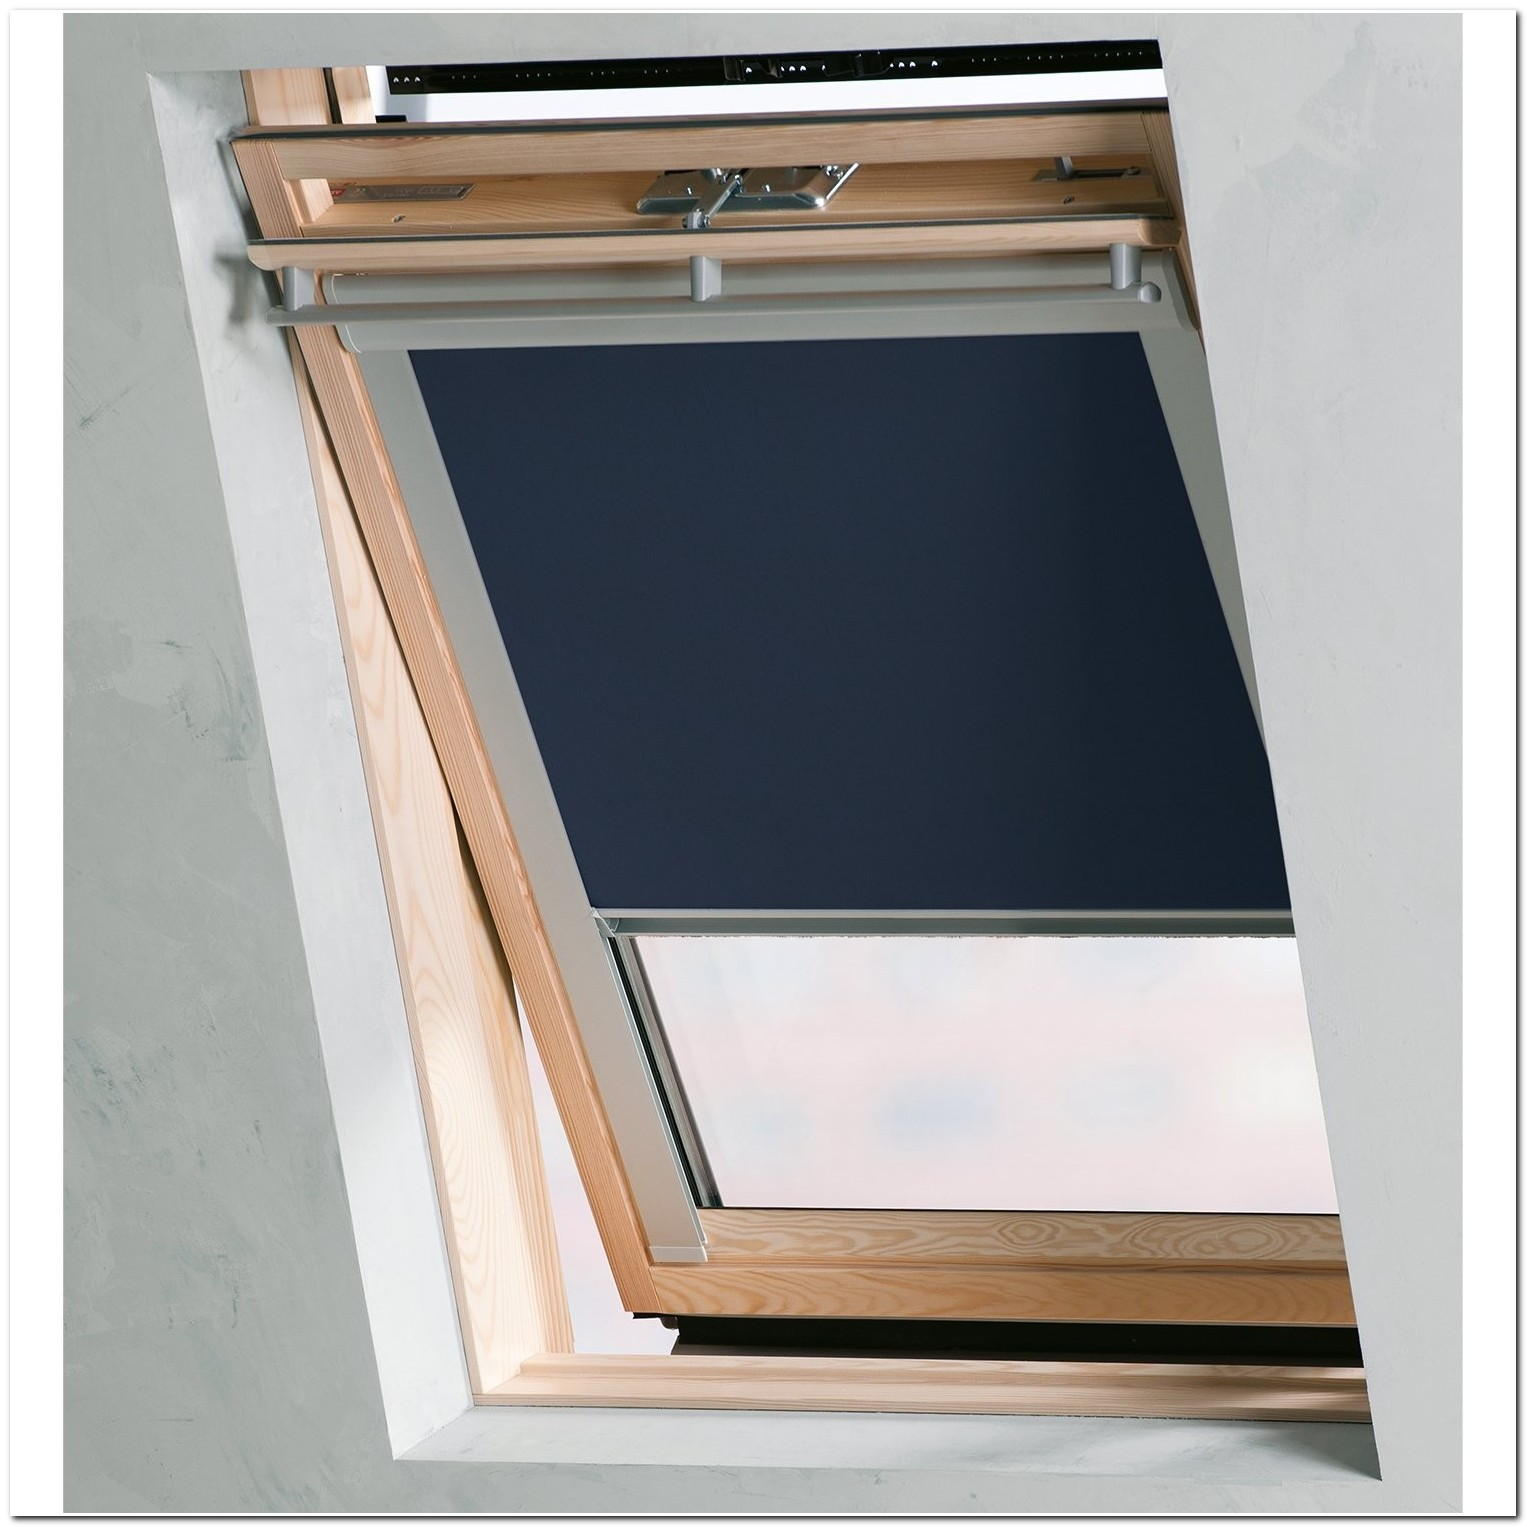 store de velux velux bdx blackout skylight roller blinds for roof windows all sizes child safe. Black Bedroom Furniture Sets. Home Design Ideas